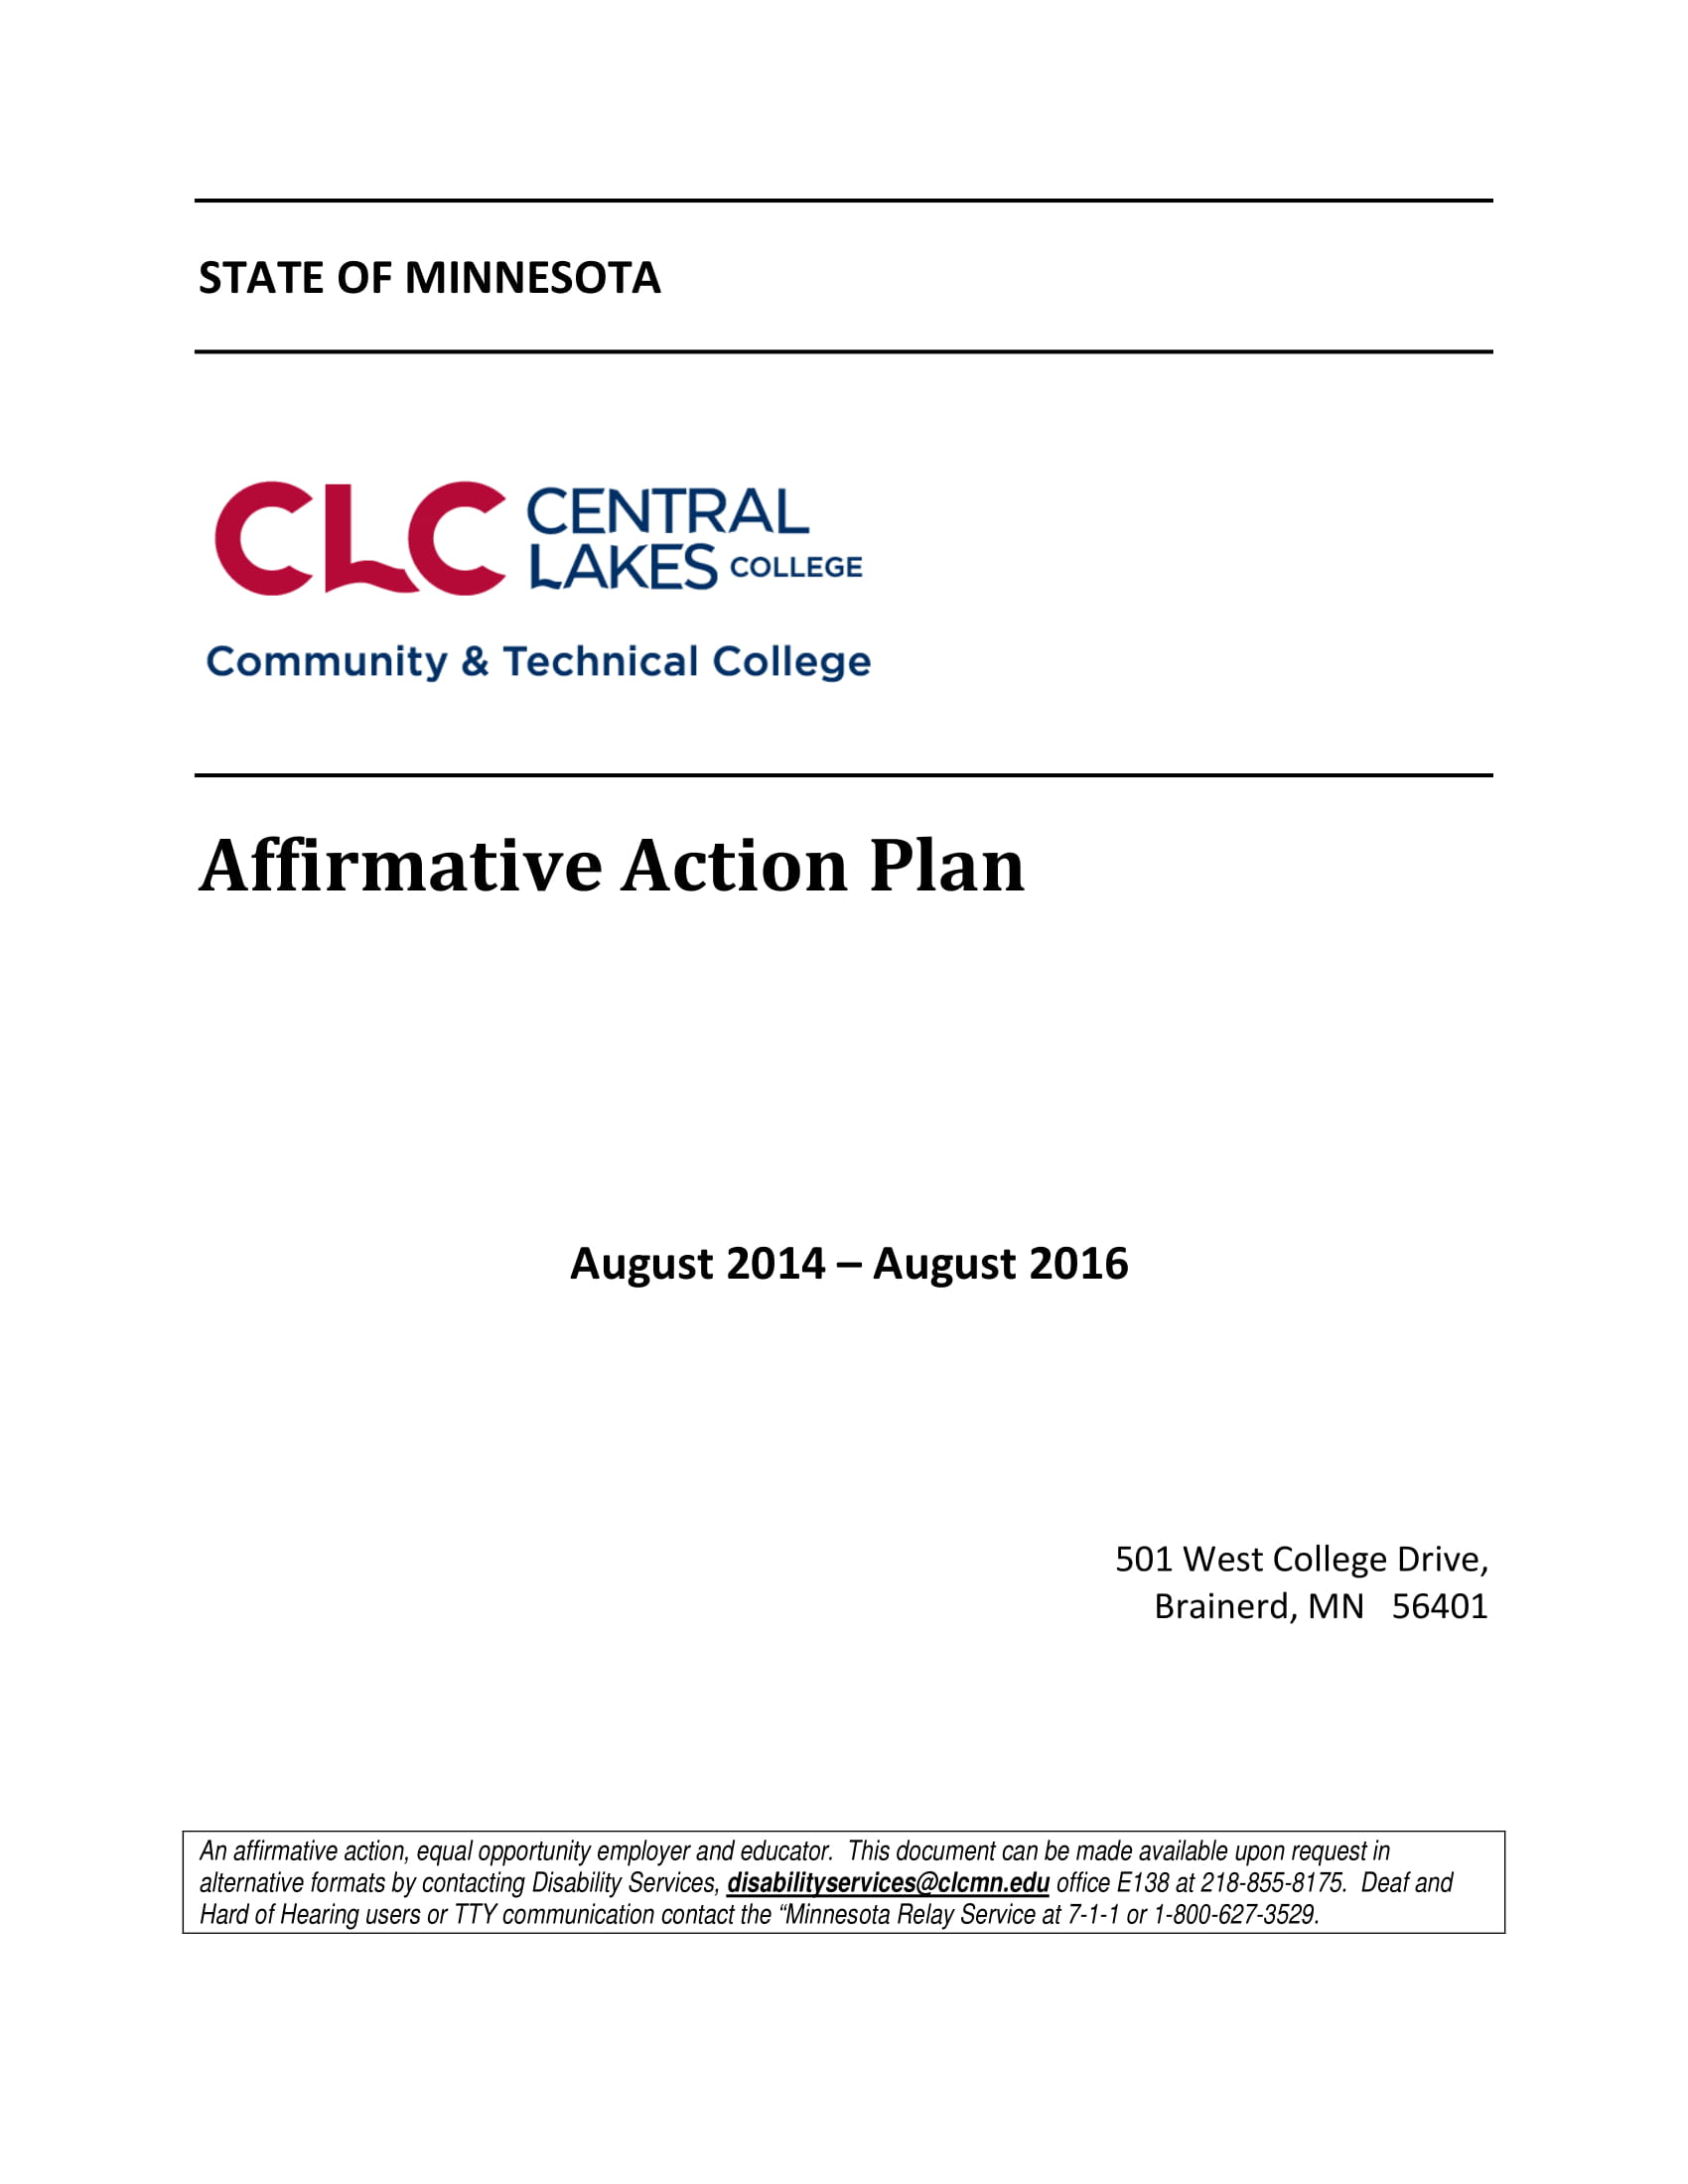 affirmative action plan example 01